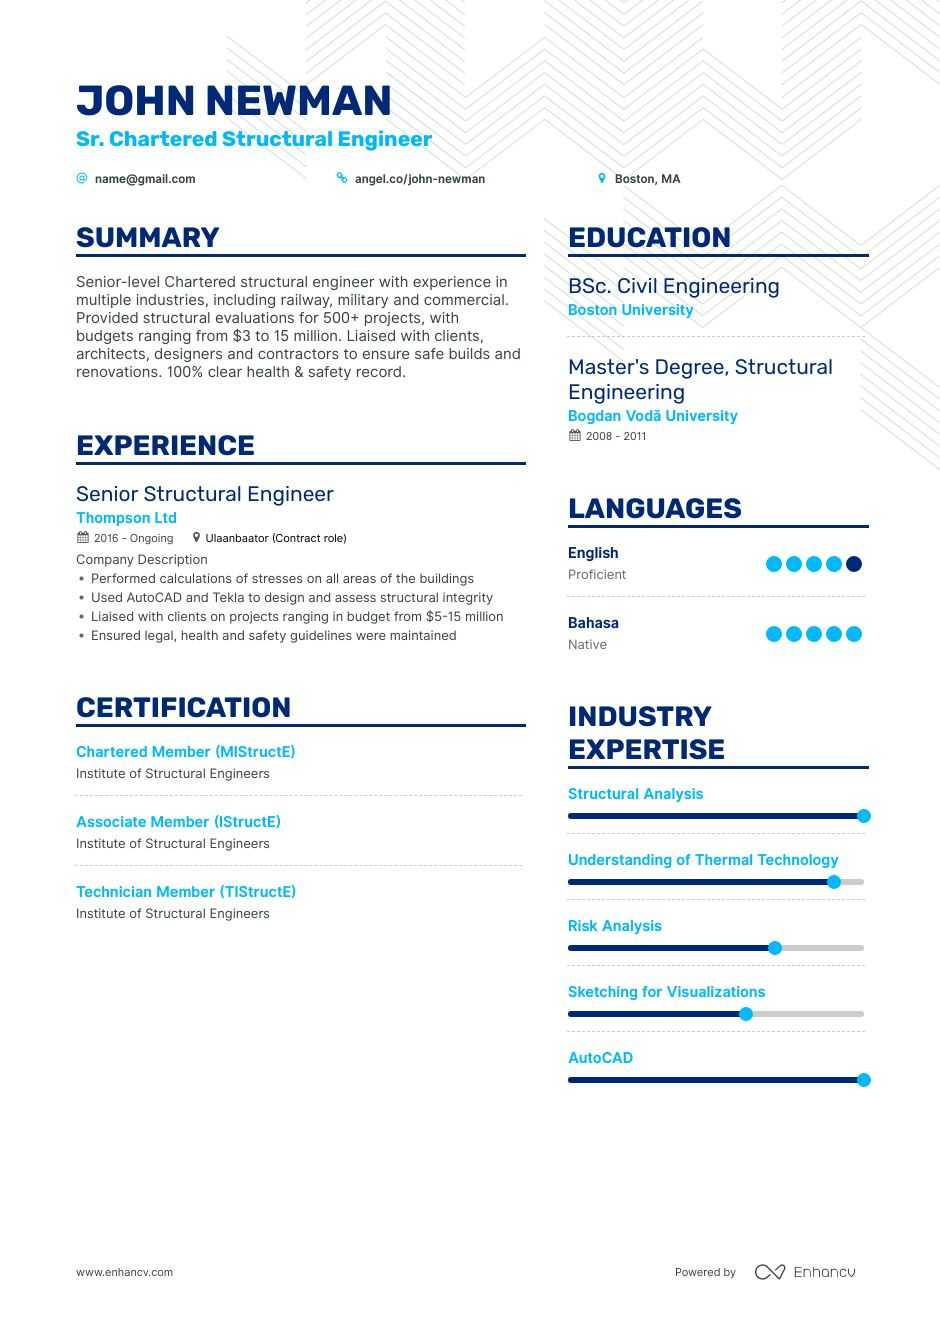 Structural Engineer Resume Example Structural Engineer Resume Examples Do's and Don'ts for 2020